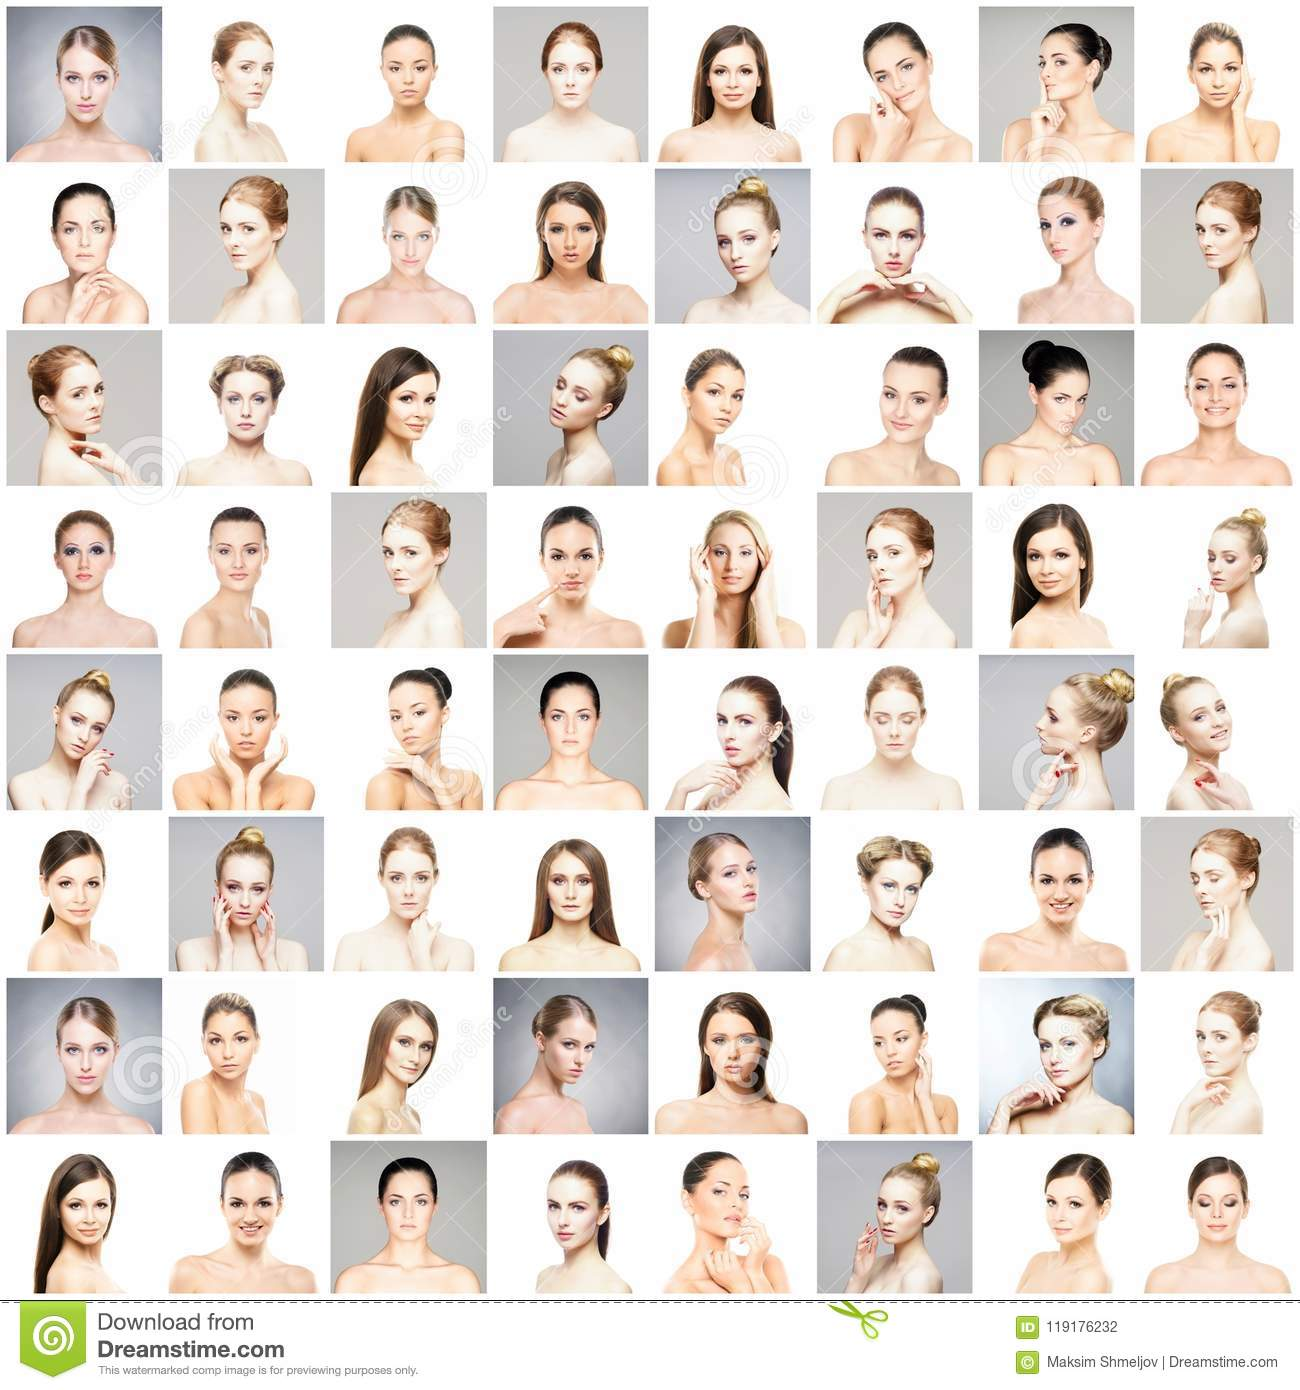 Collage of beautiful, healthy and young spa female portraits. Faces of different women. Face lifting, skincare, plastic